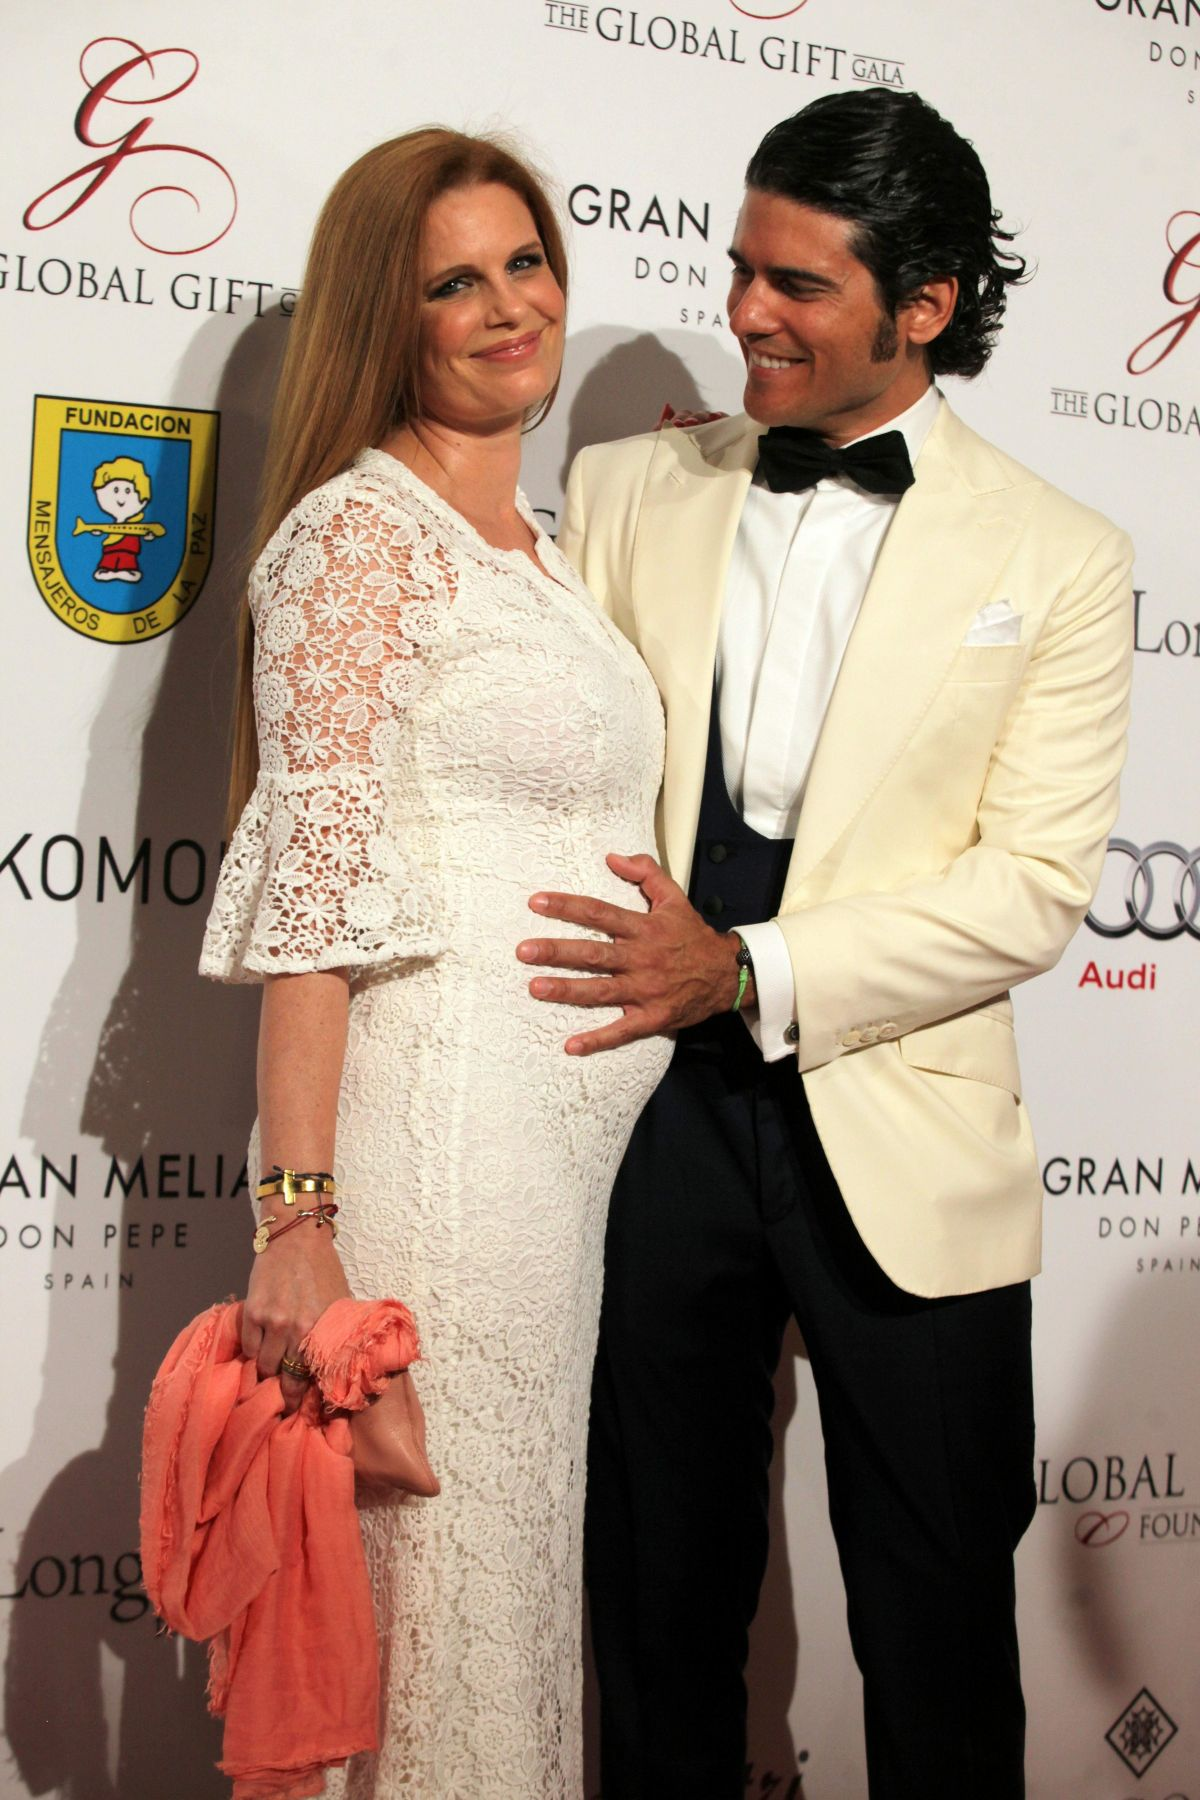 Pregnant OLIVIA DE BORBON at Global Gift Gala 2016 at Gran Melia Don Pepe Resort in Marbella 07/17/2016